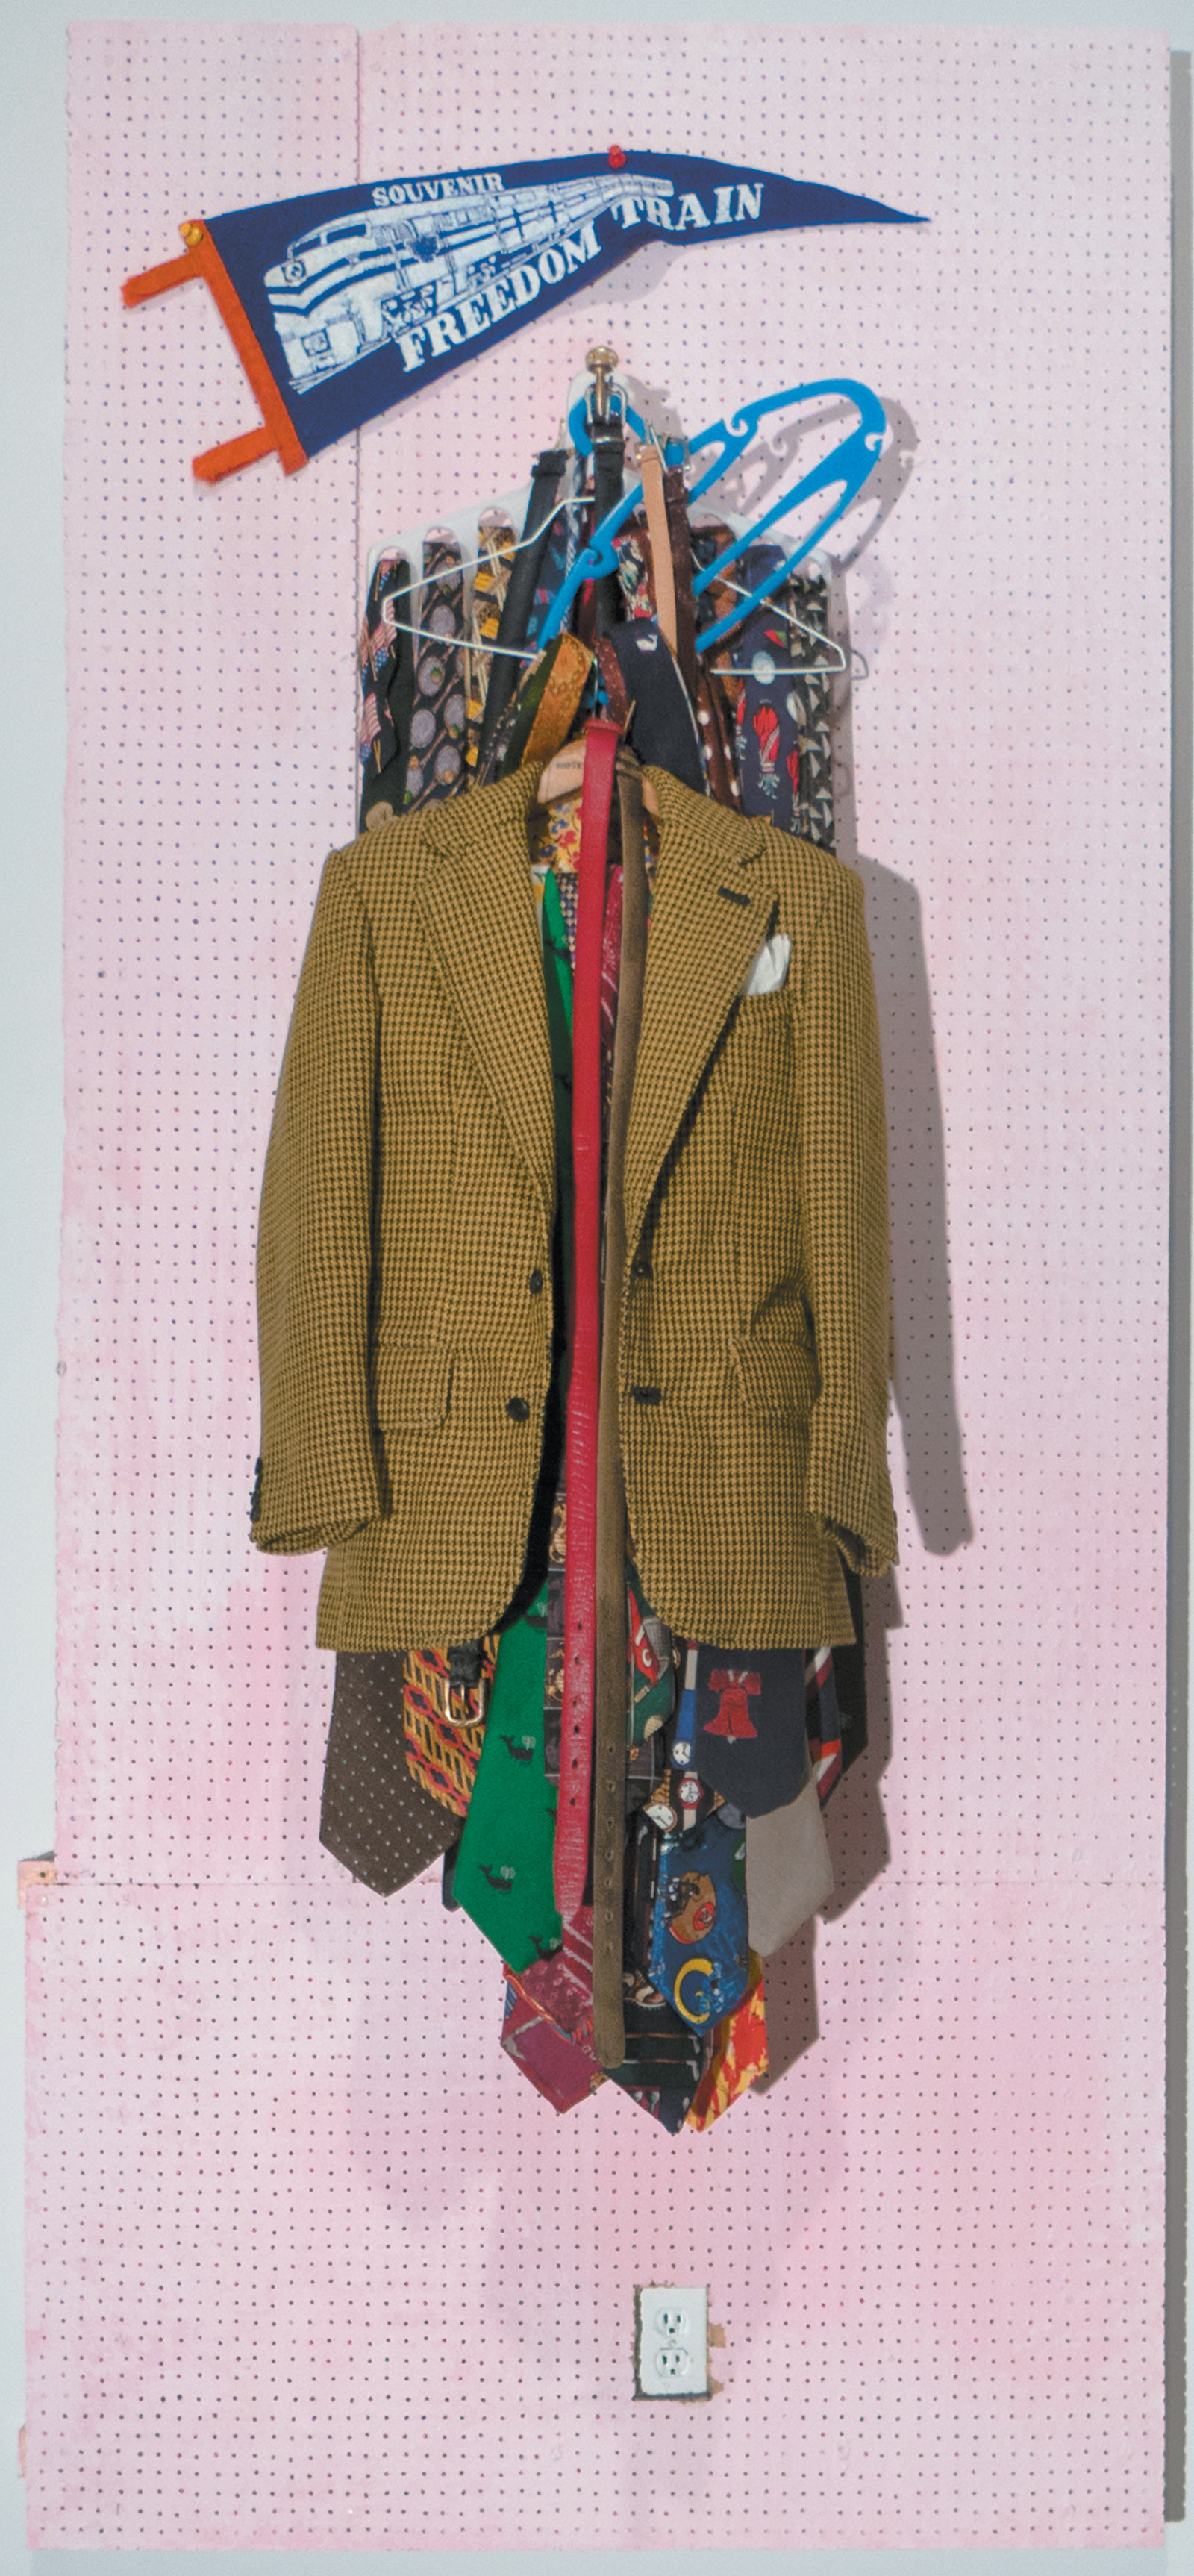 Charles LeDray: Freedom Train, 39 3/4 x 18 x 6 1/2 inches, 2013–2015. The jacket is about twenty inches high.